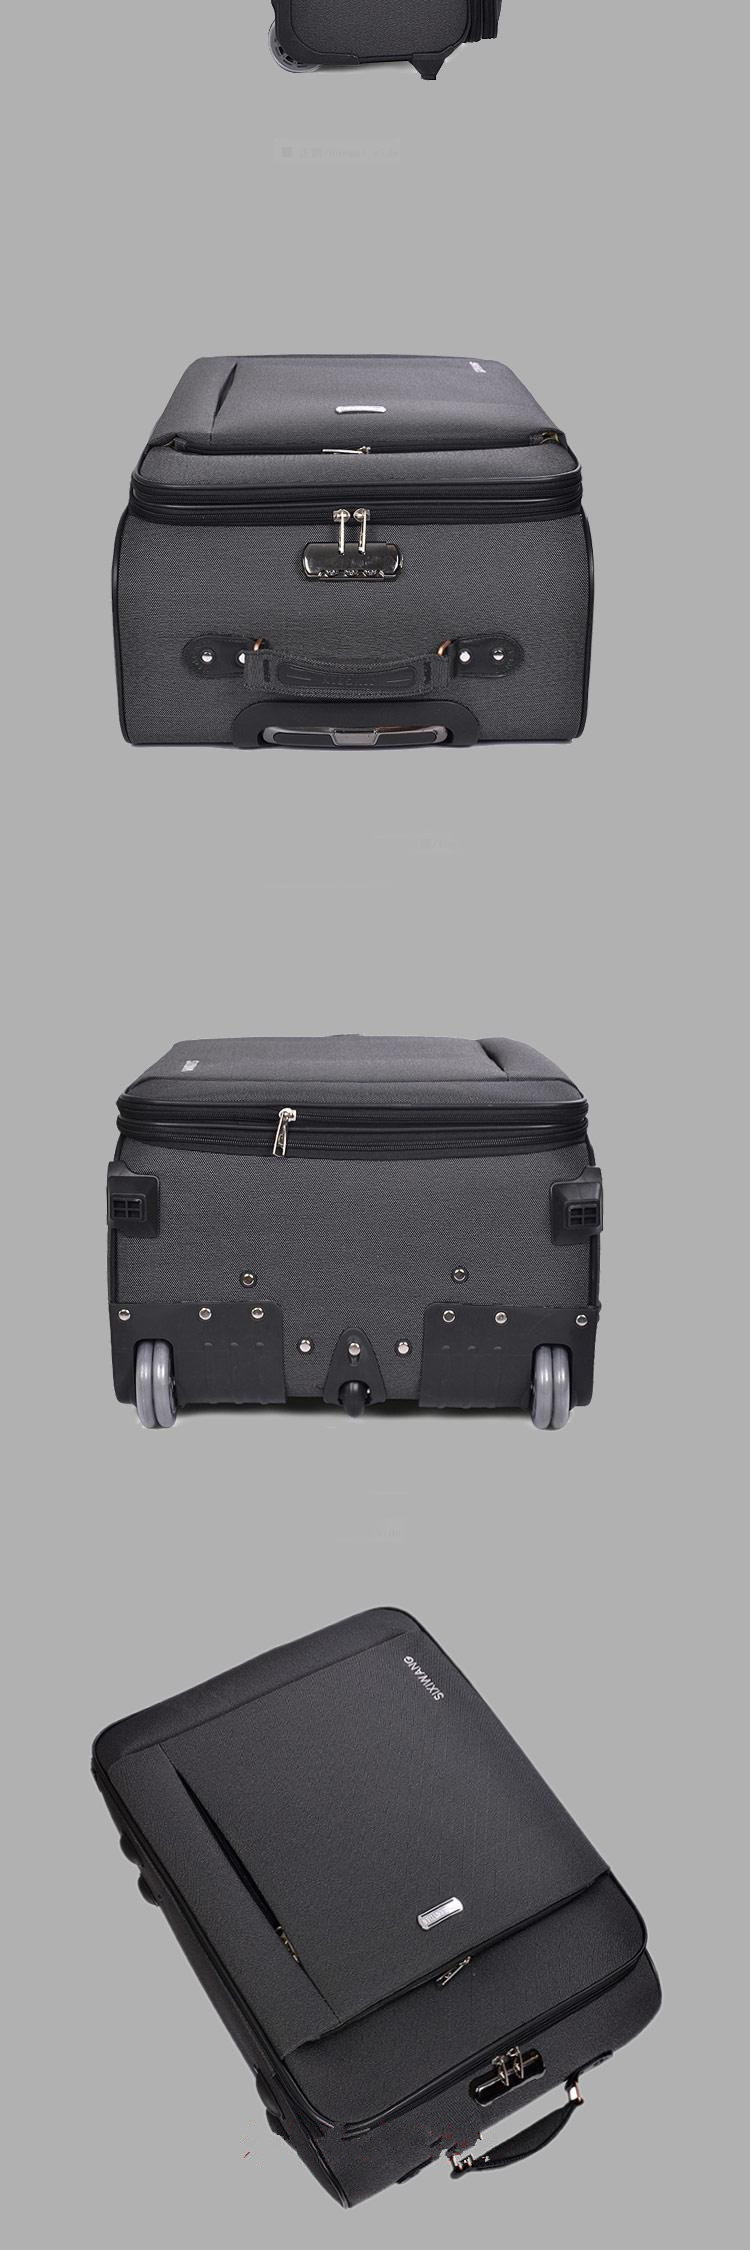 New students Travel Luggage Oxford suitcase Men high quality Rolling luggage On Wheels Women brand Trolley Suitcase travel bag